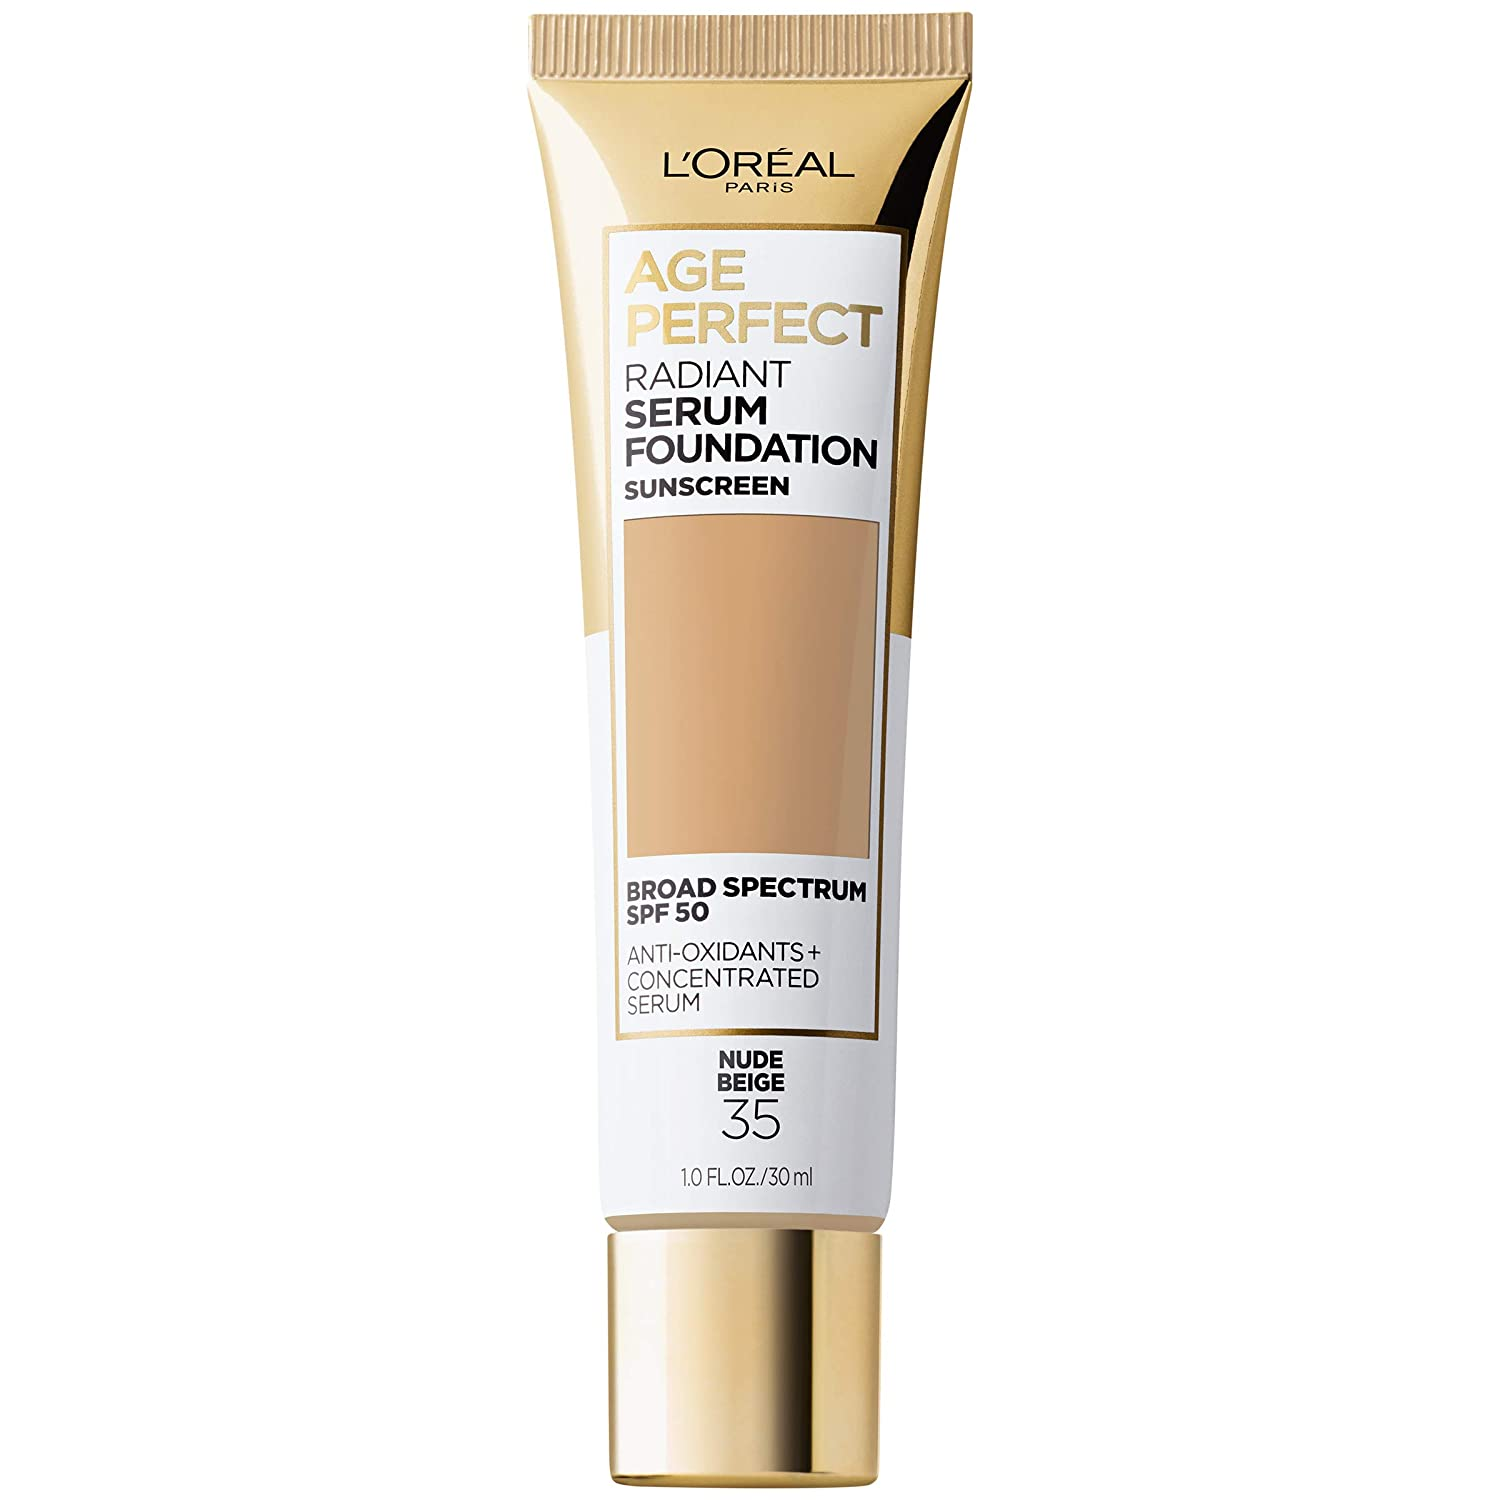 L'Oreal Paris Radiant serum foundation with spf 50, vitamin b3, and hydrating serum by age perfect cosmetics, Nude Beige, 1 Fl Oz